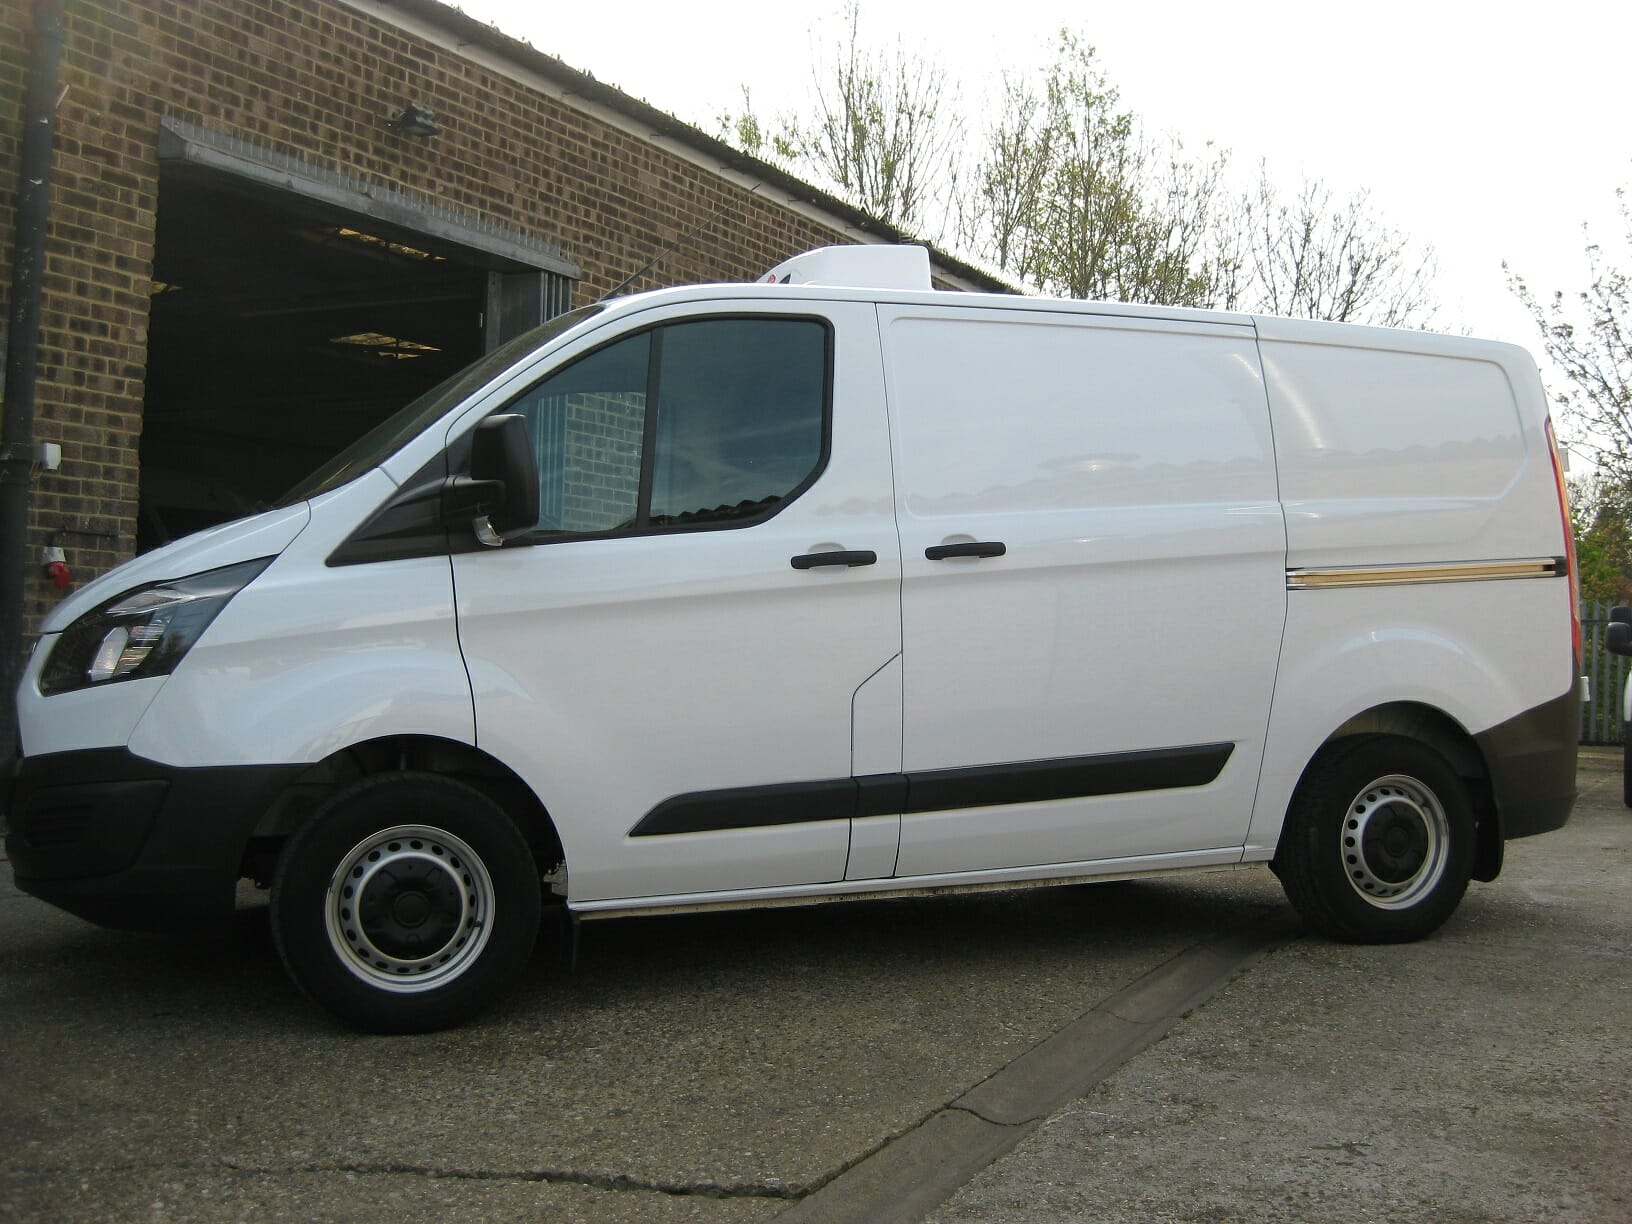 2019 Ford Transit Custom 300 L1 H1 105ps Euro 6 Freezer Van For Sale